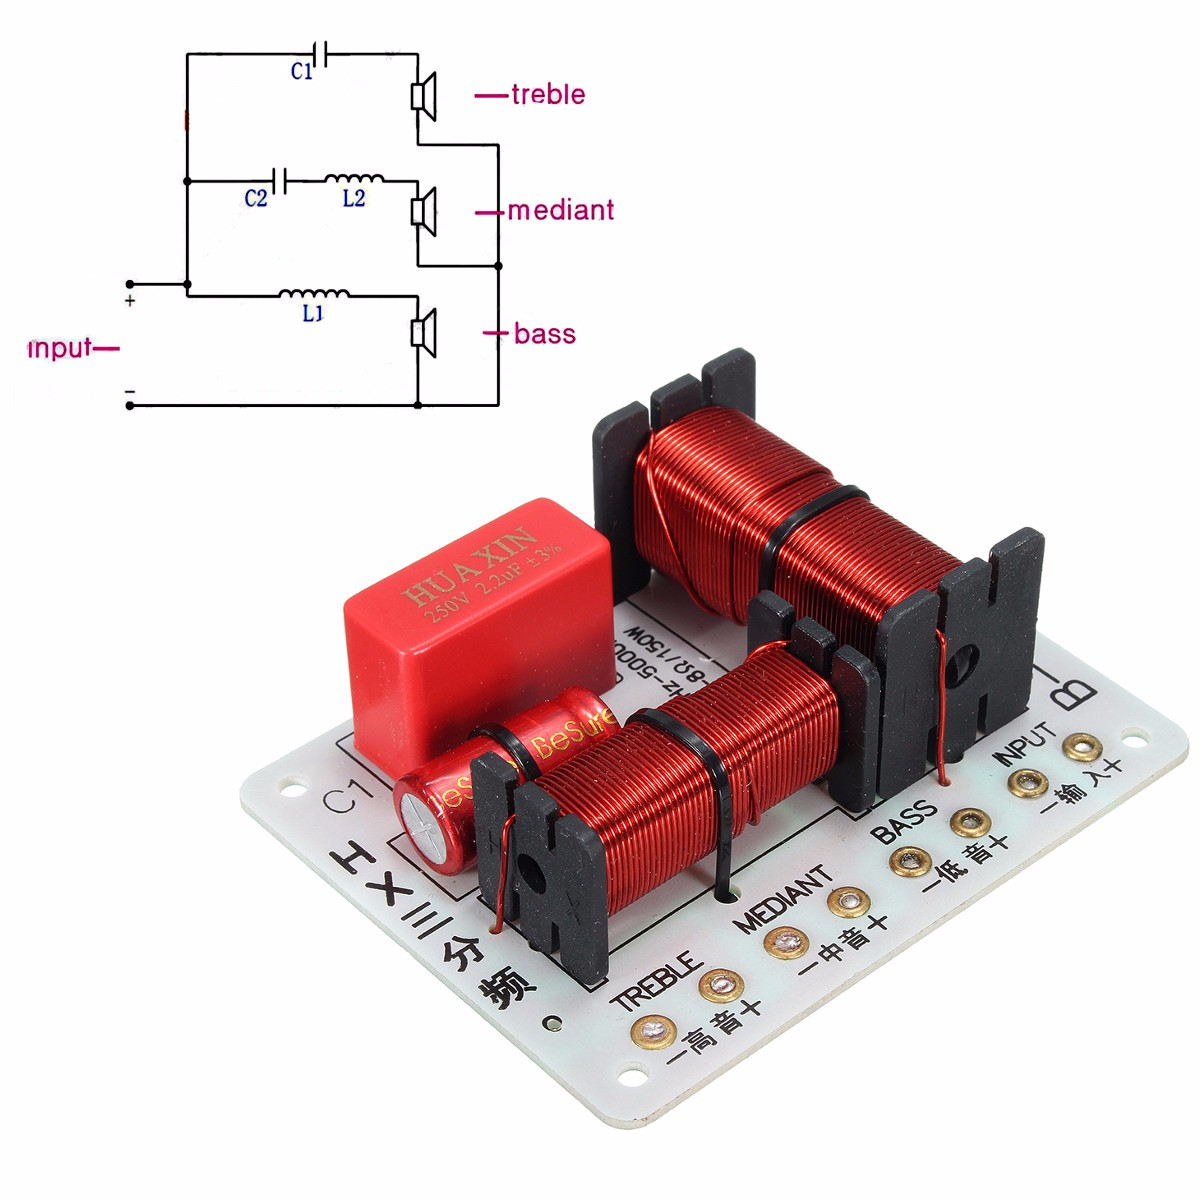 New Multi Speaker 3 Unit Audio Frequency Divider Way Crossover Passive Circuit Diagram Images Of 2 Filters 150w Acoustic Components In From Electronic